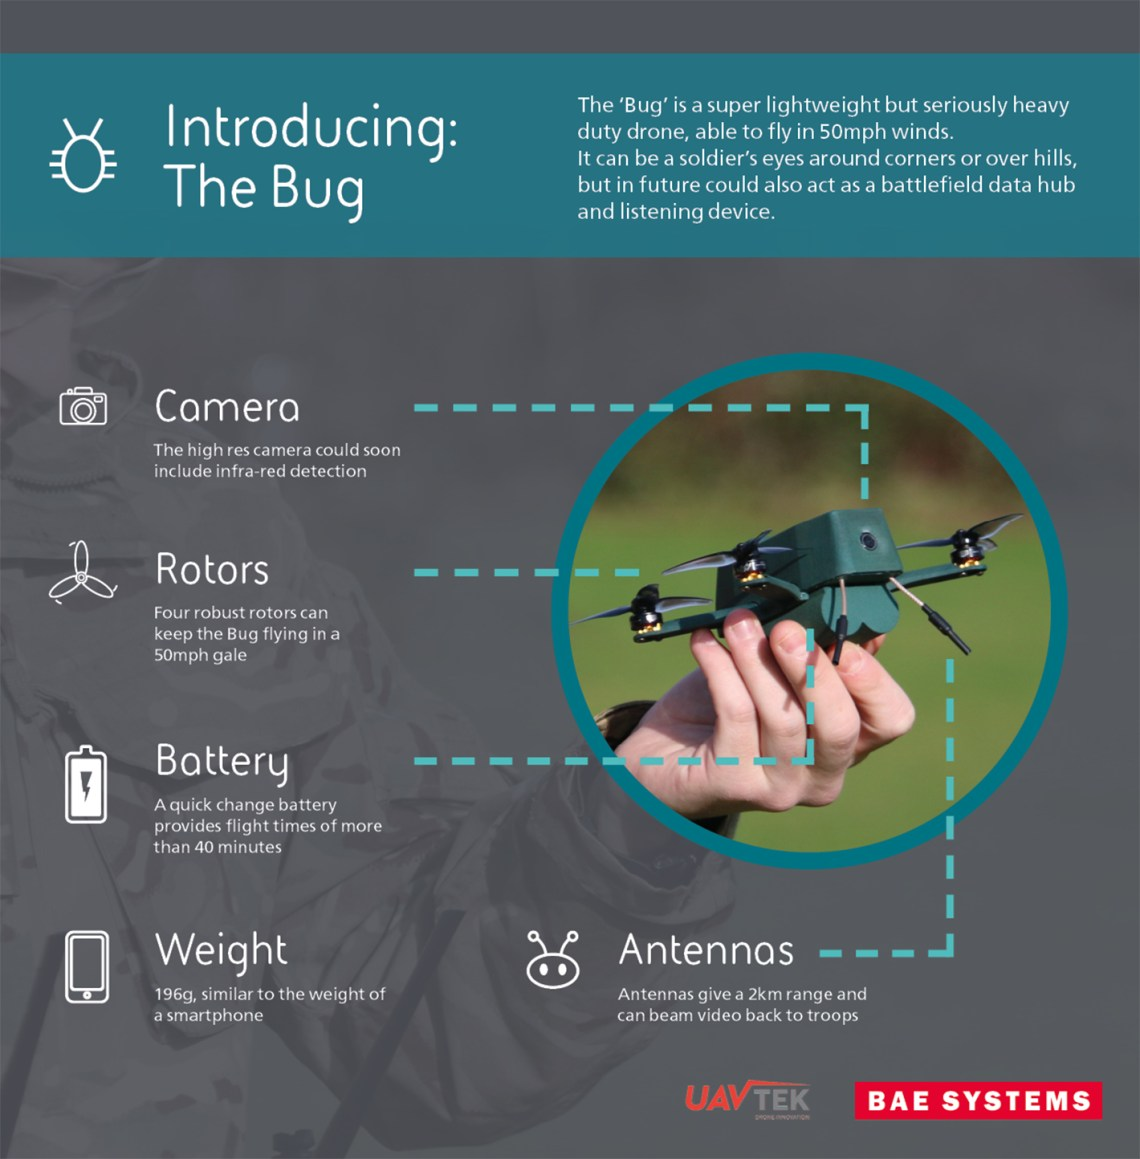 BAE Systems and UAVTEK Deliver Bug Nano Drone to British Army